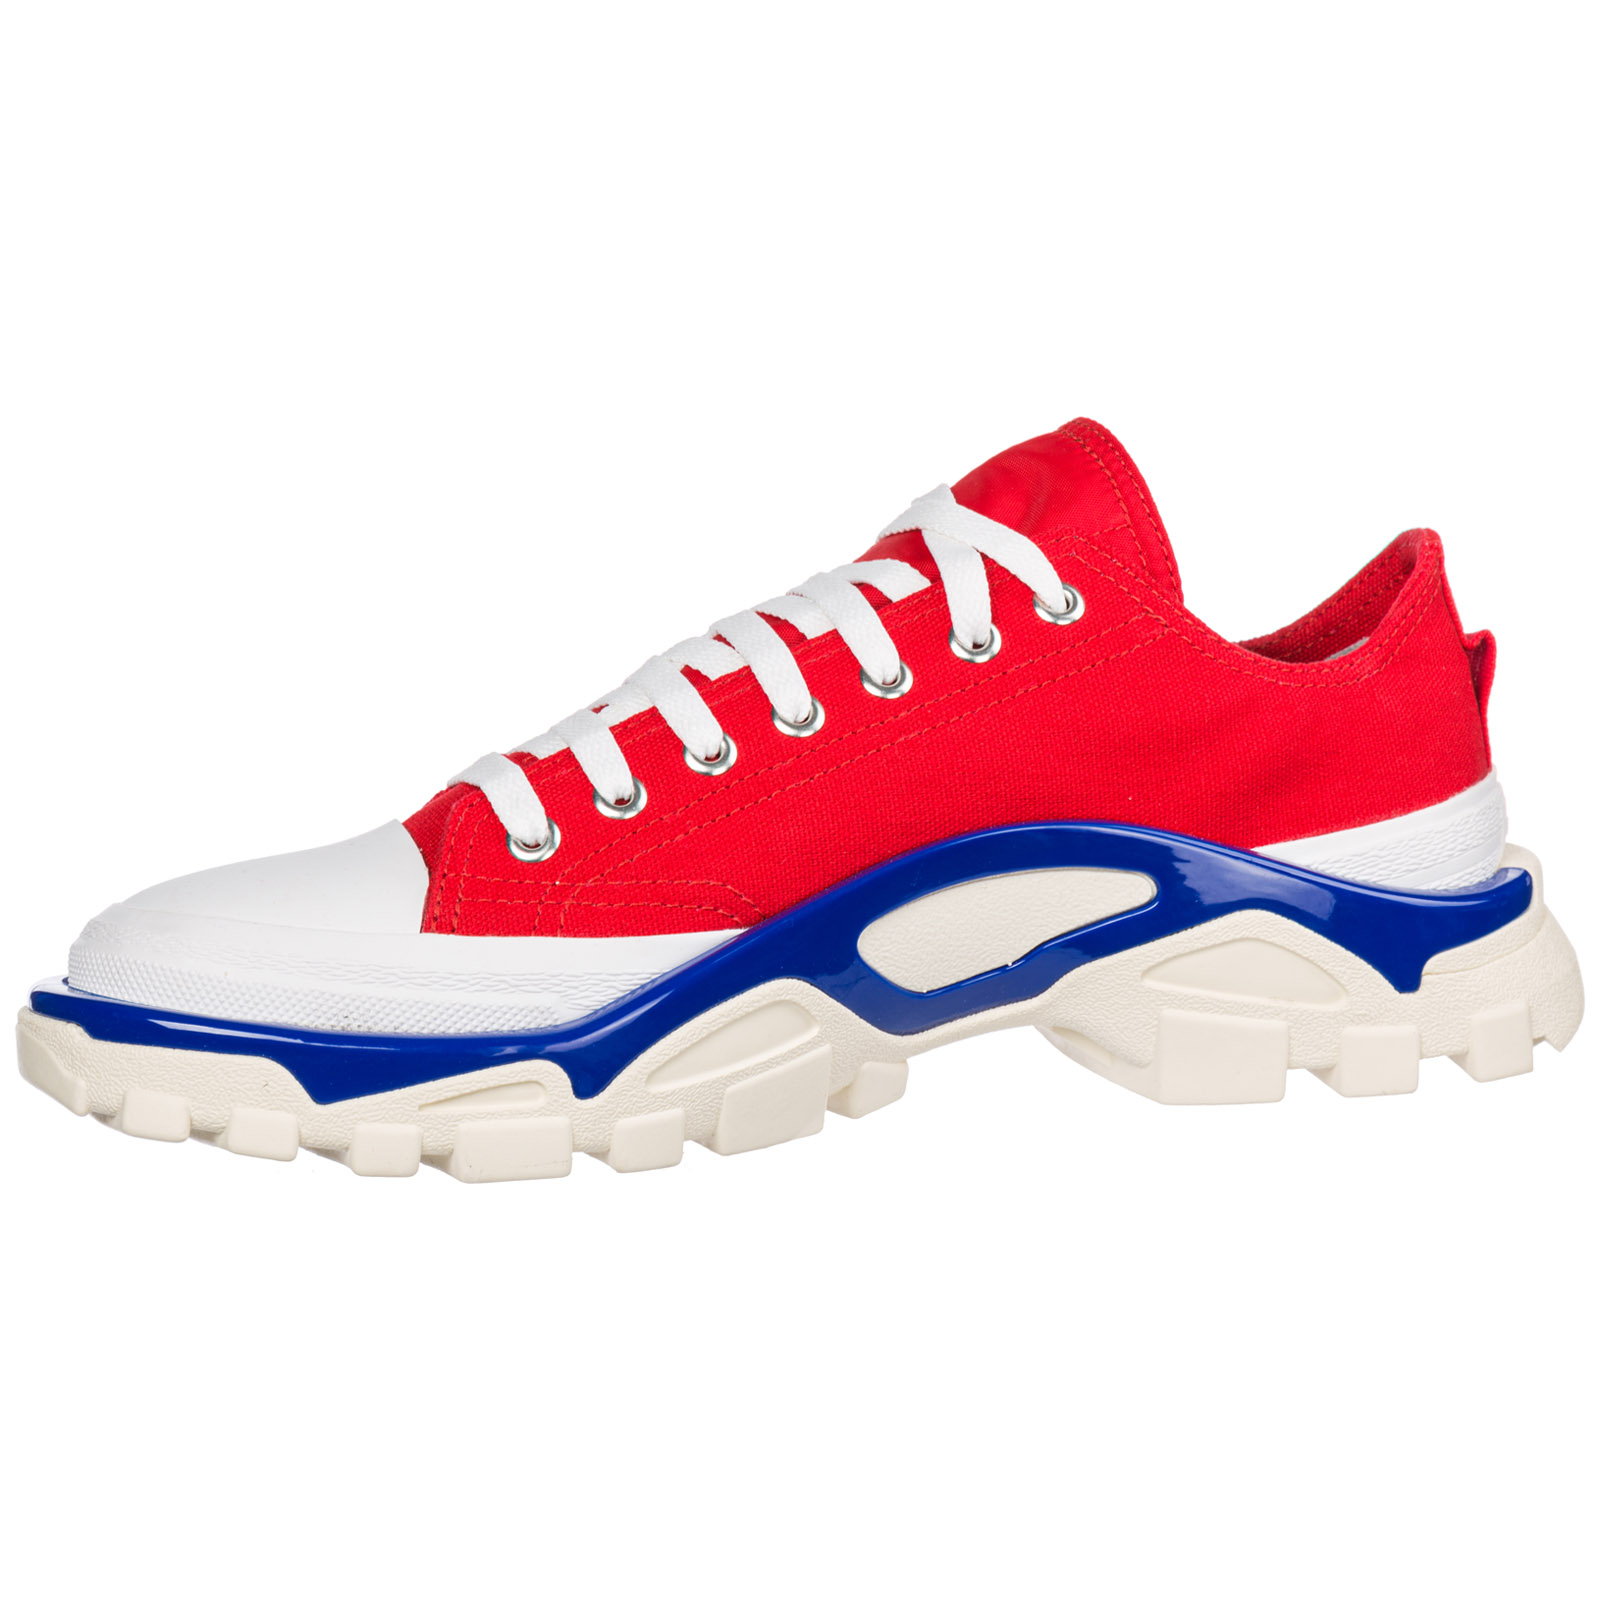 Detroit Ee79363 Raf Sneakers Simons Runner Adidas Rs Rosso By EDHI29